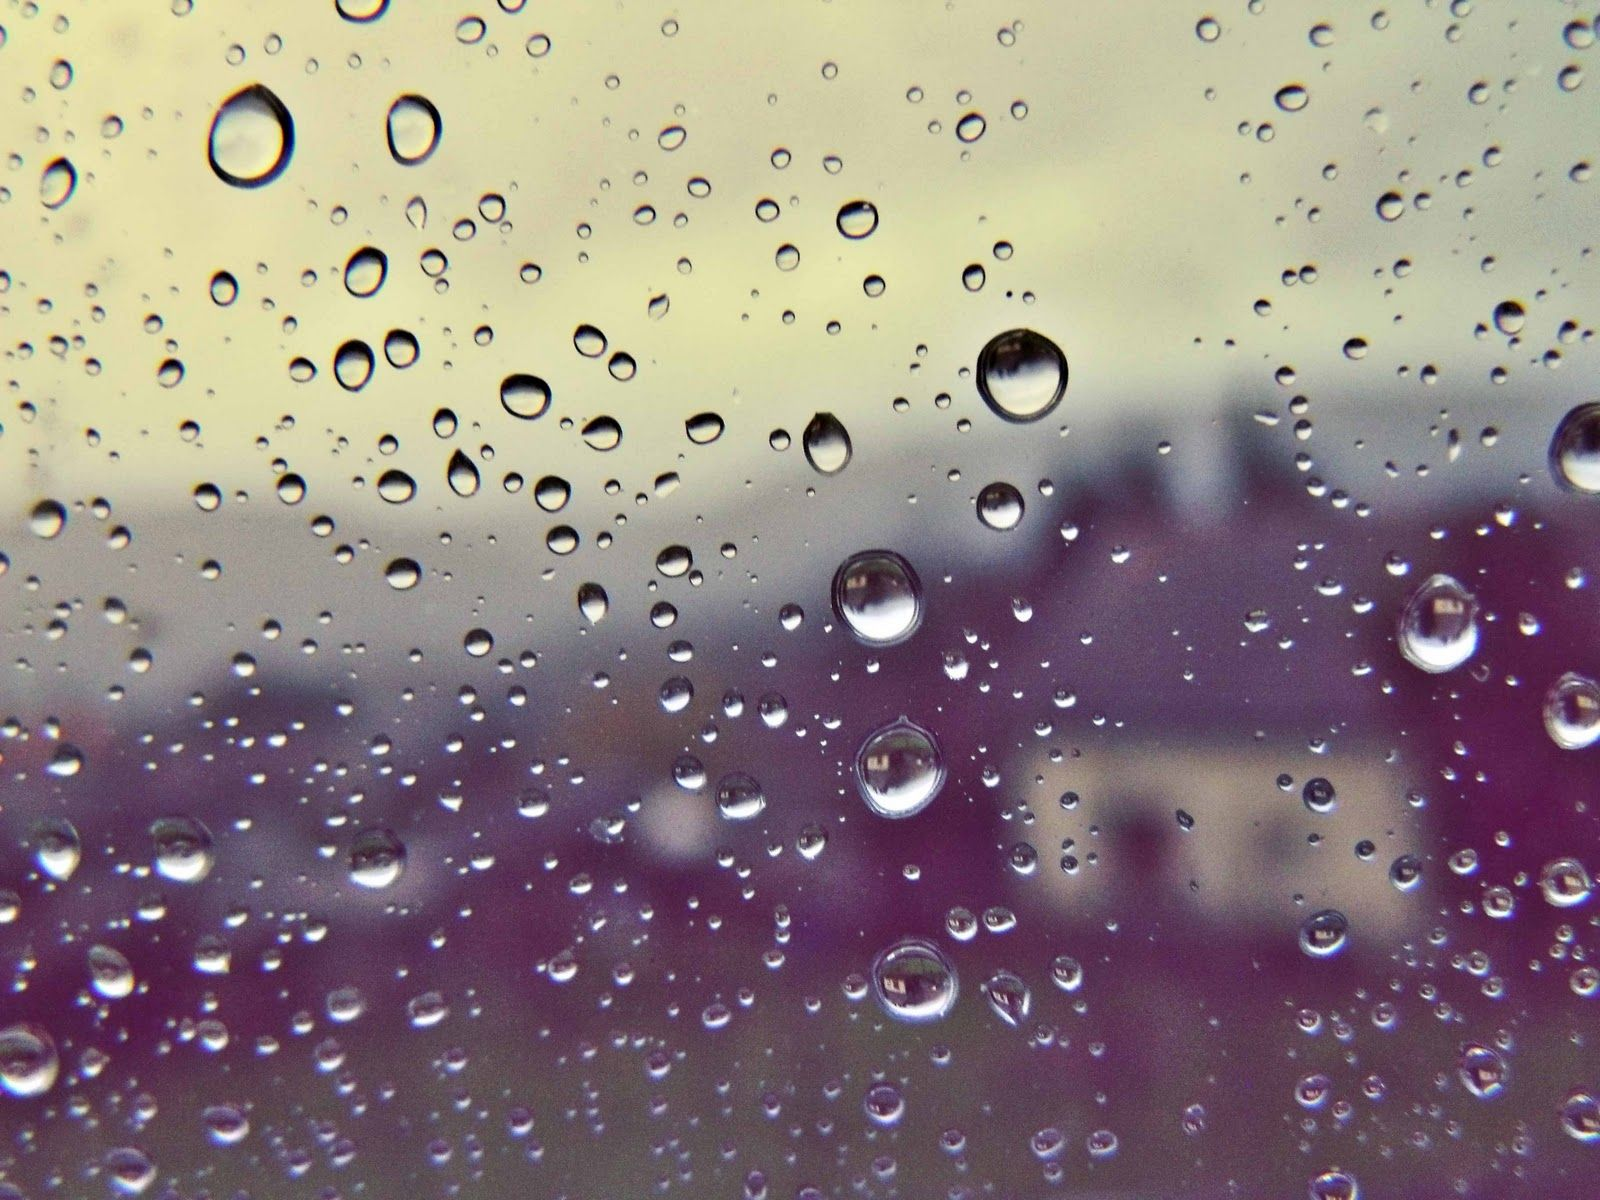 Staying Cozy On A Rainy Day Rain Wallpapers Rainy Day Wallpaper Rainy Day Photos